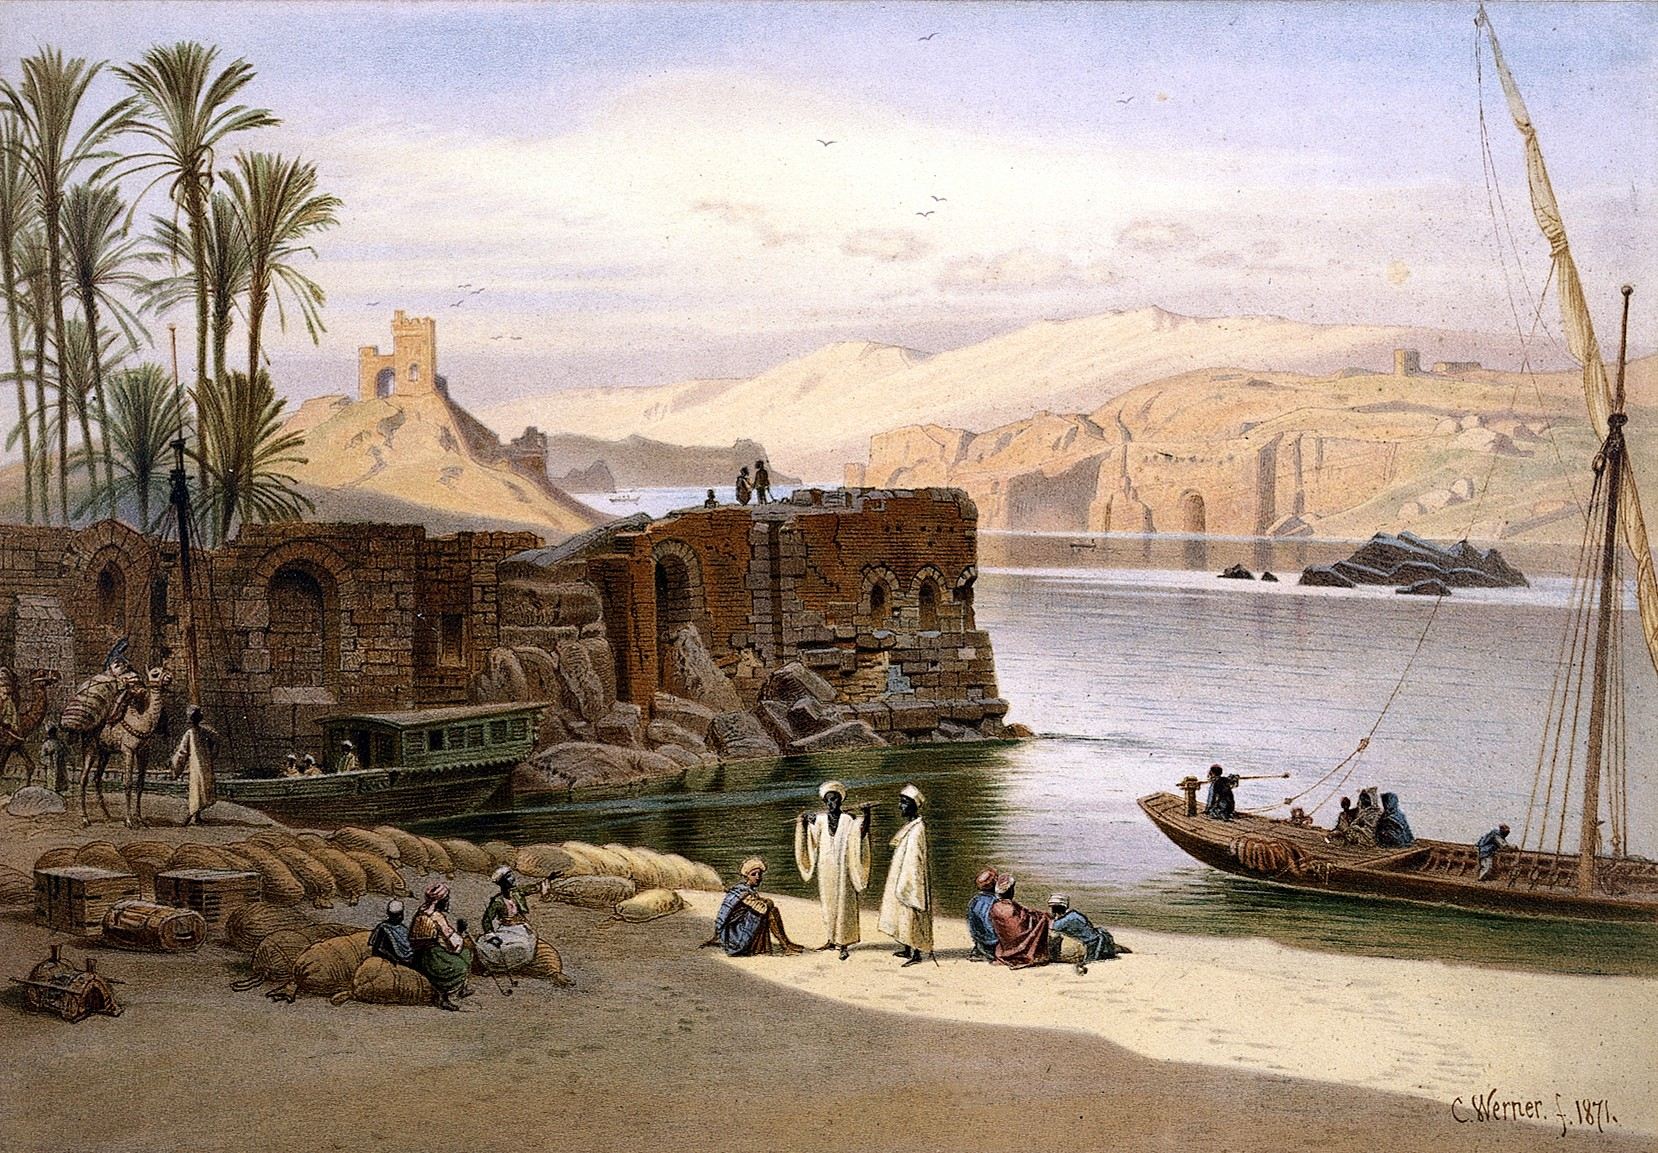 Egypt: the Nile at Aswān - Carl Werner, 1871